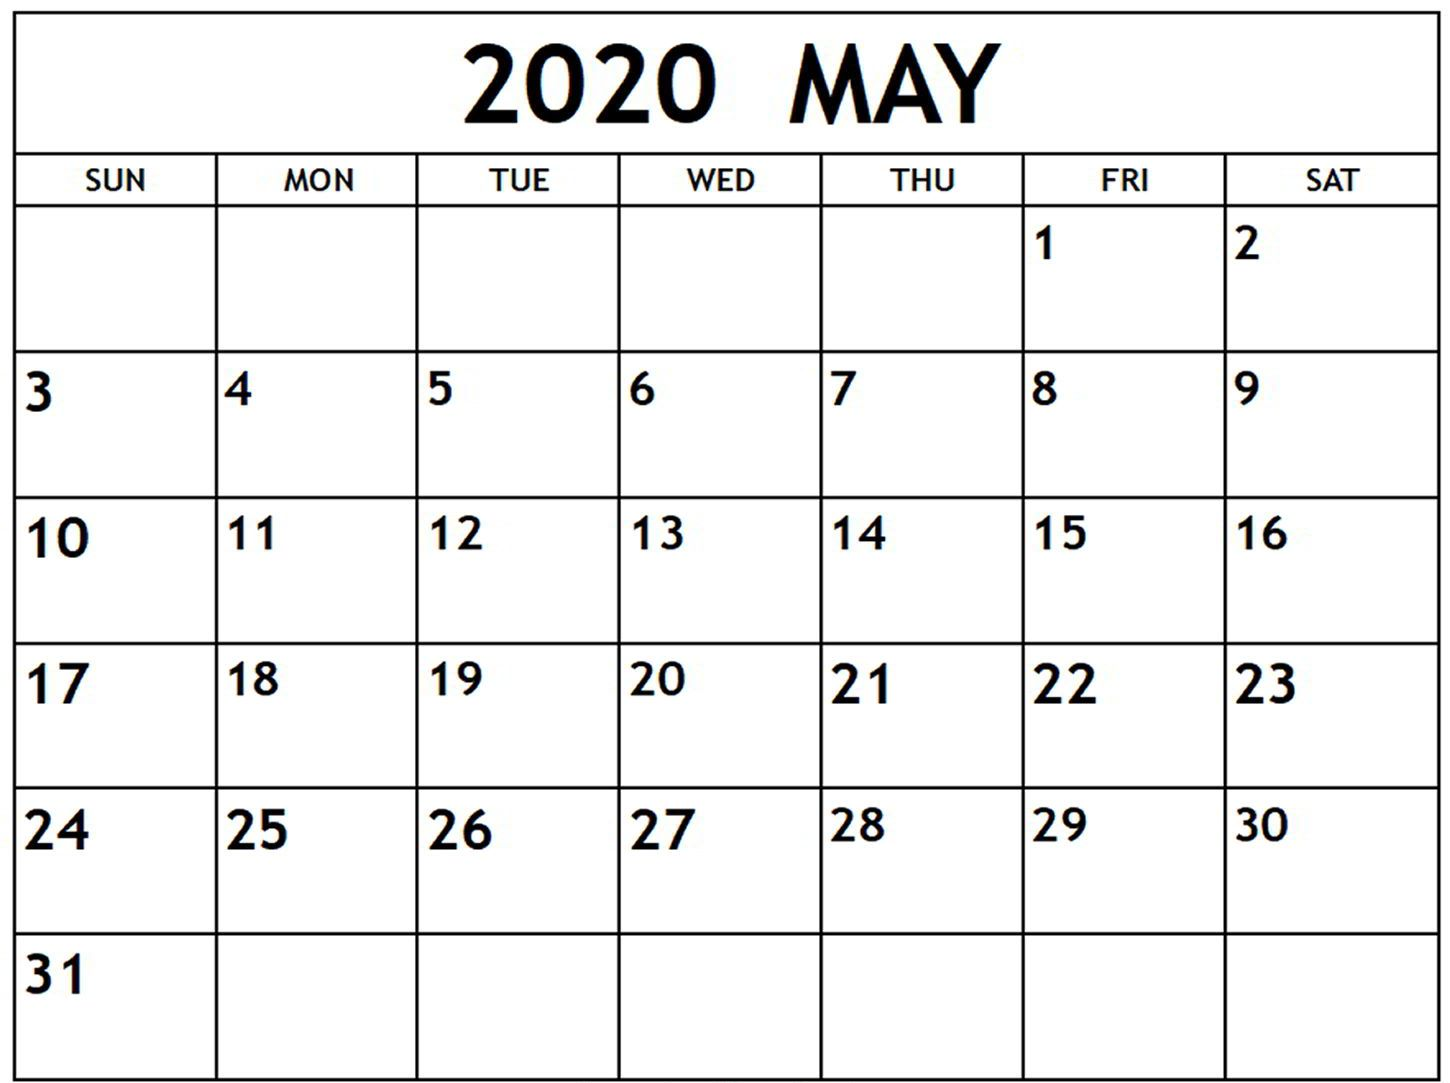 Fillable May 2020 Calendar Printable